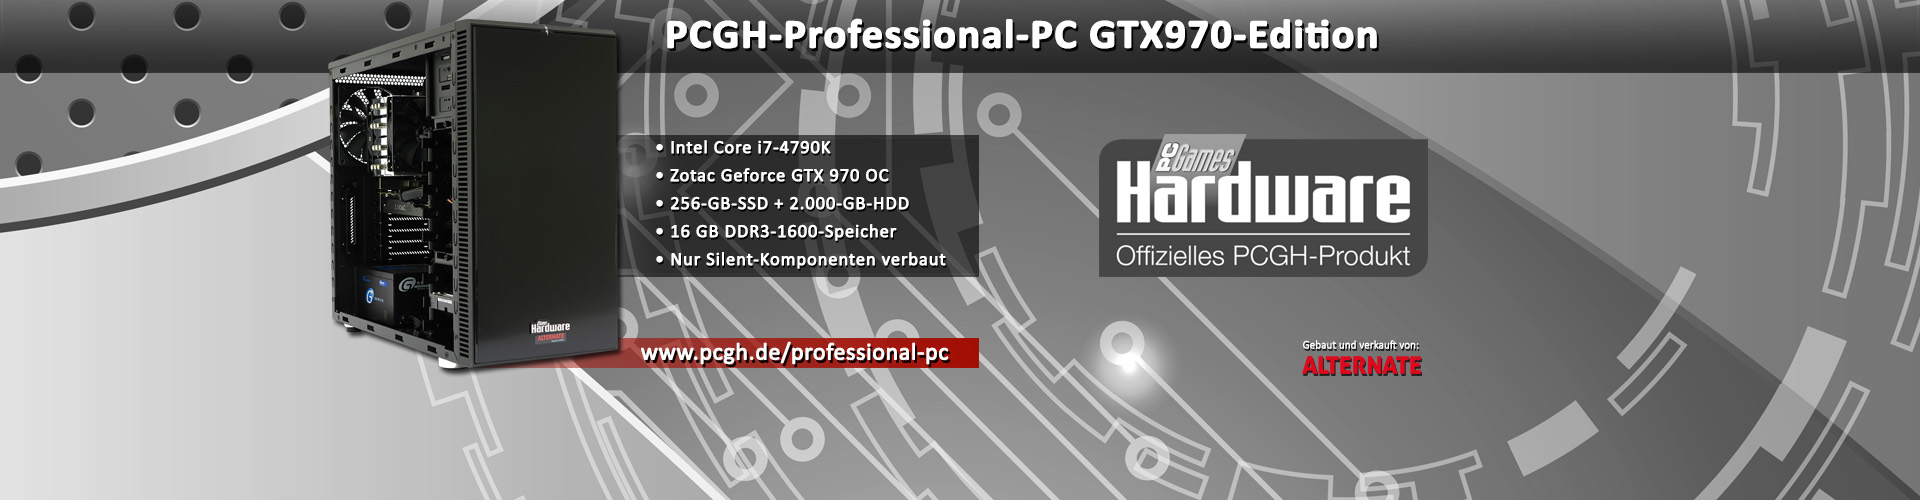 PCGH-Professional-PC GTX970-Edition: Core i7-4790K + Geforce GTX 970 [Anzeige]